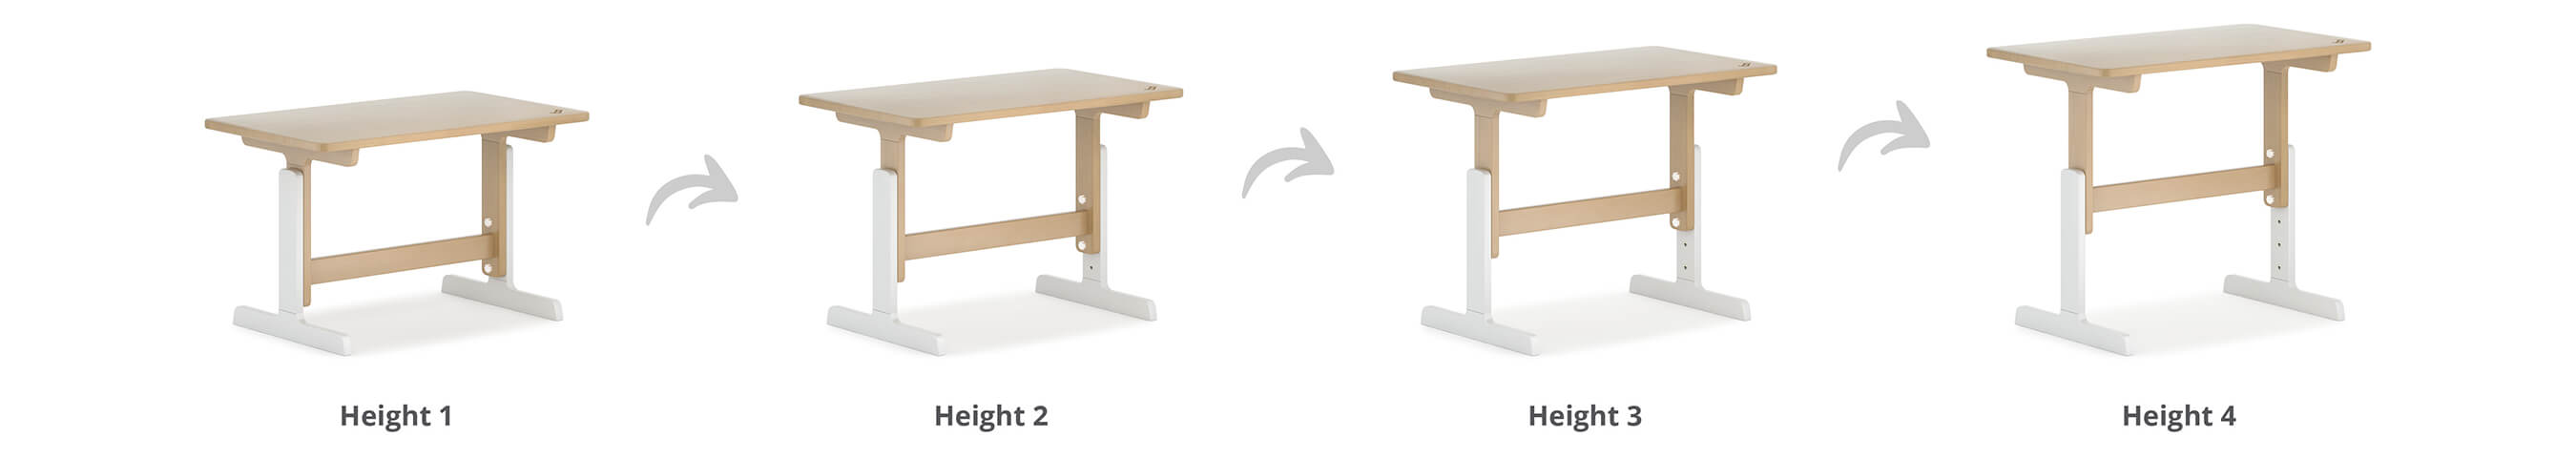 Feature_Highlight_CMS_Blocks_Height_Adjustable_Desks_and_Chairs_January_2021-035